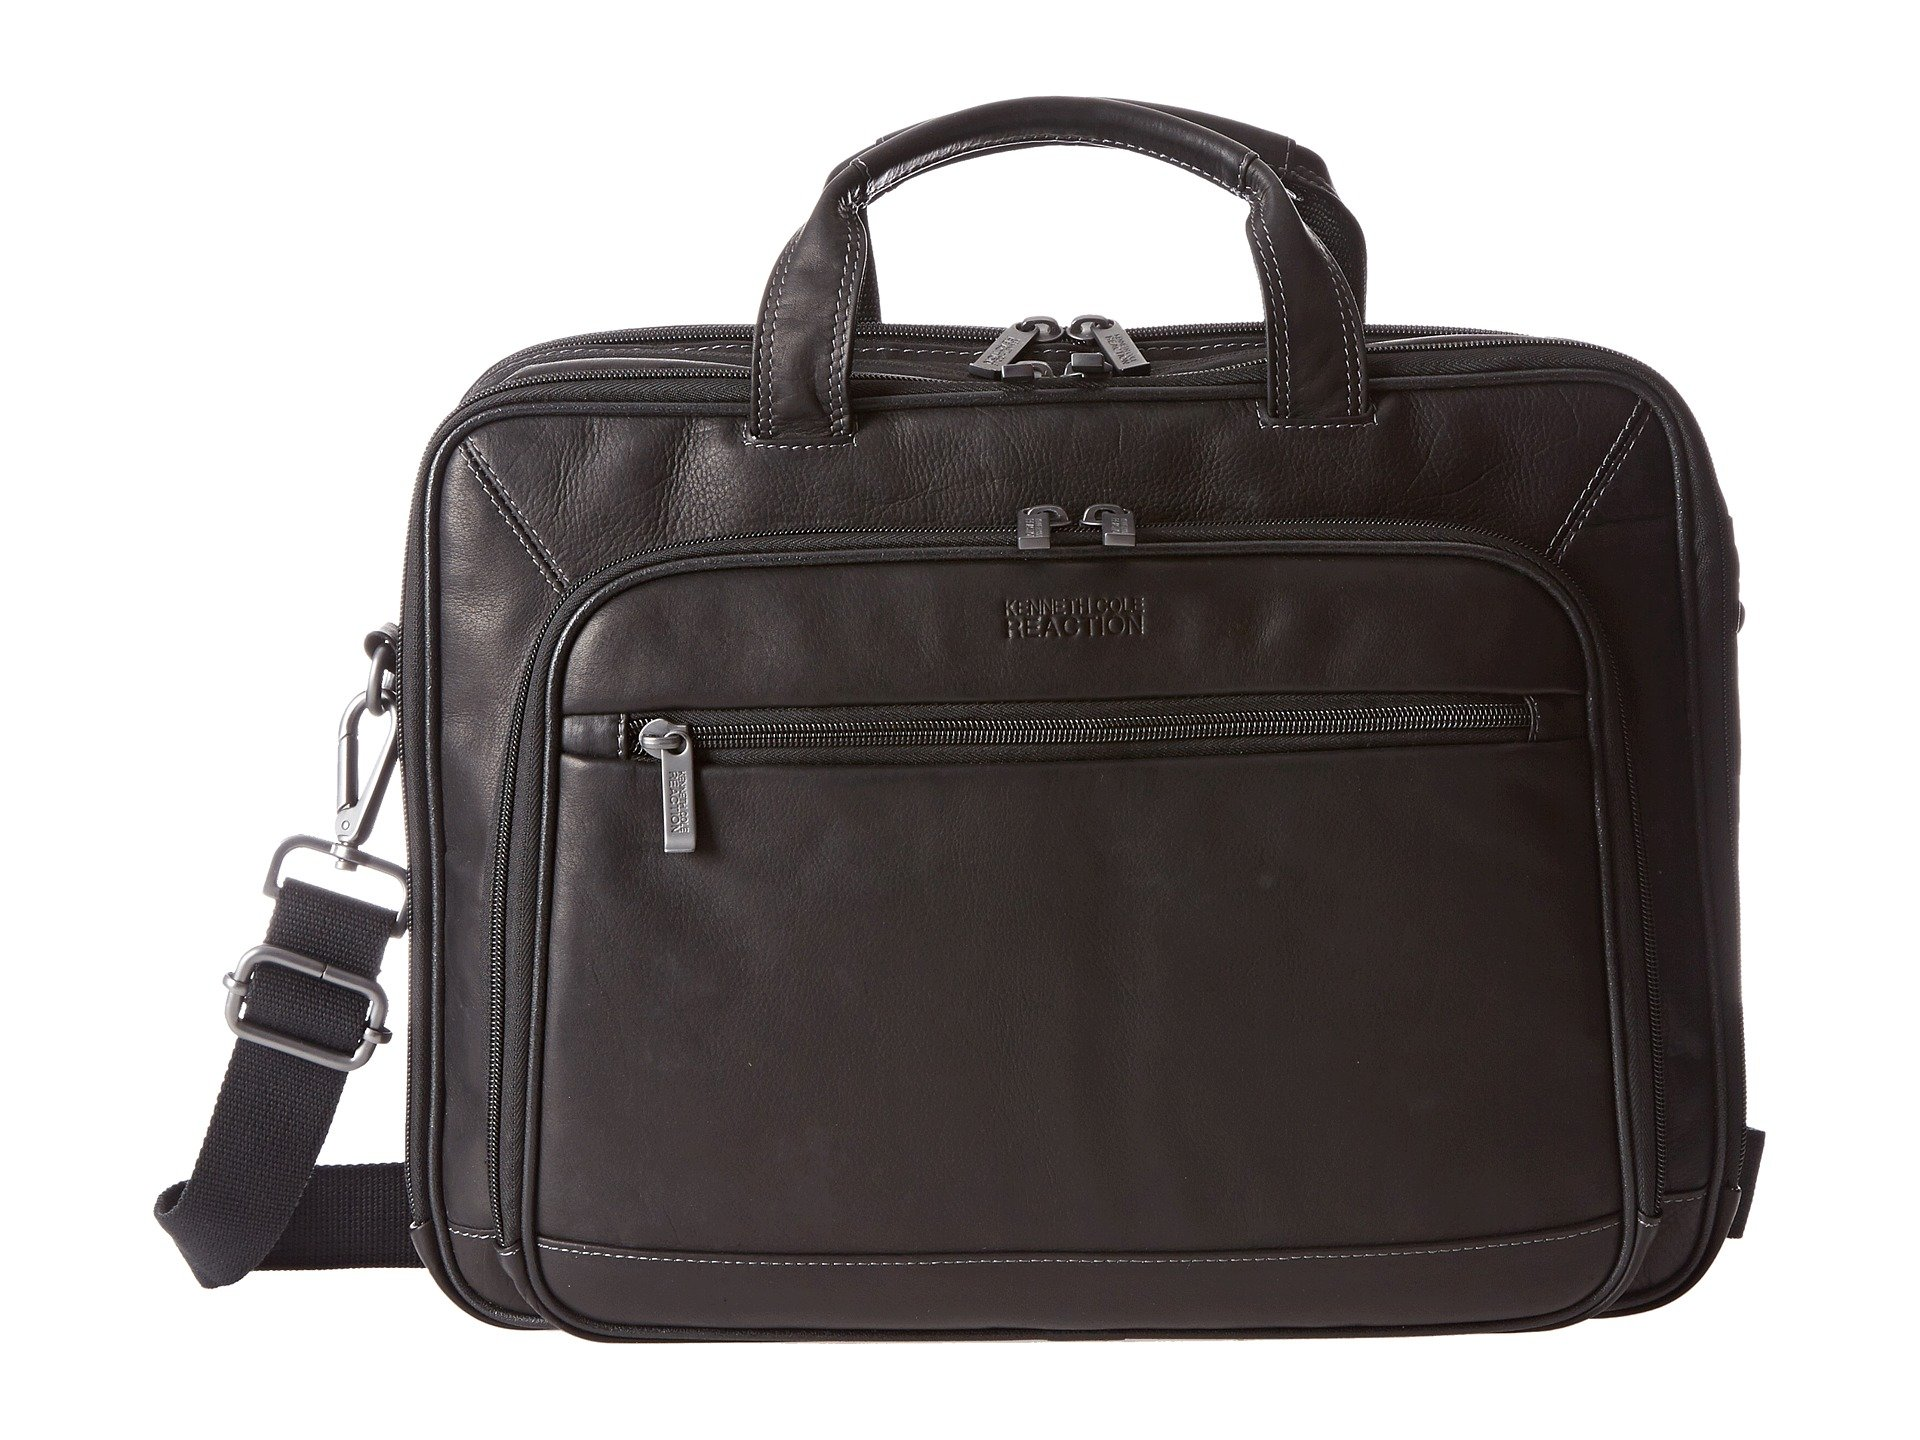 Kenneth Cole Reaction, Bags | Shipped Free at Zappos